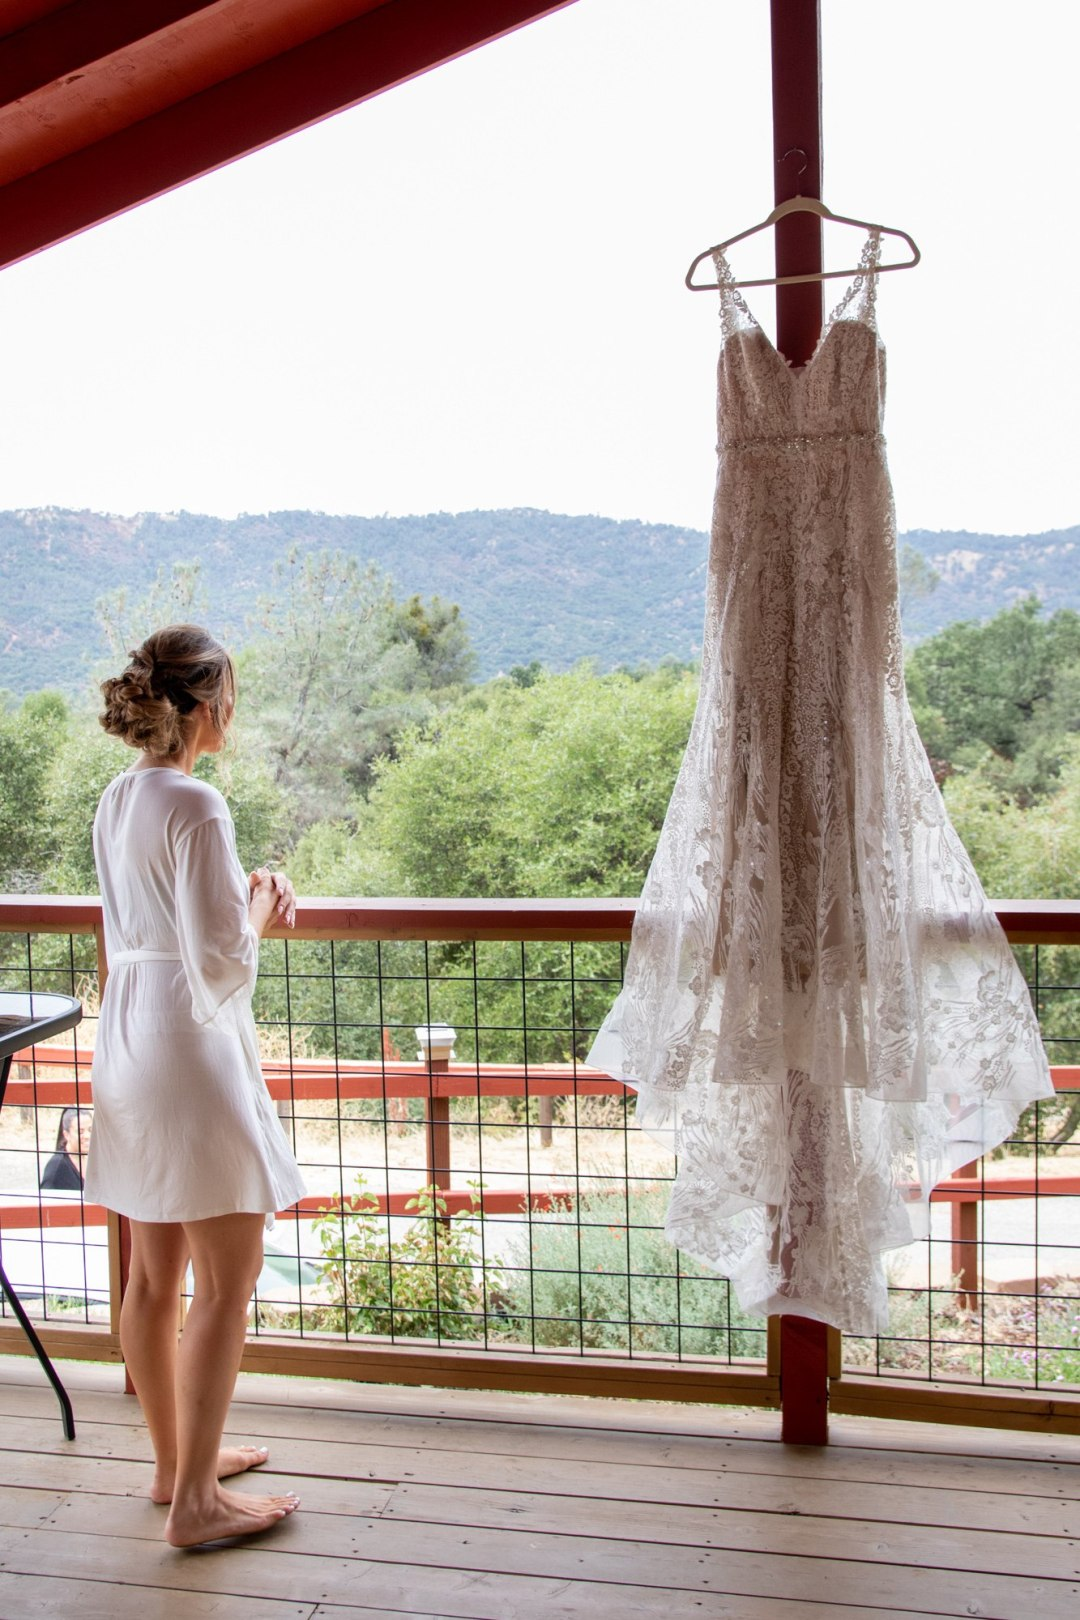 Bride admiring her wedding dress on the deck of her Yosemite airbnb.